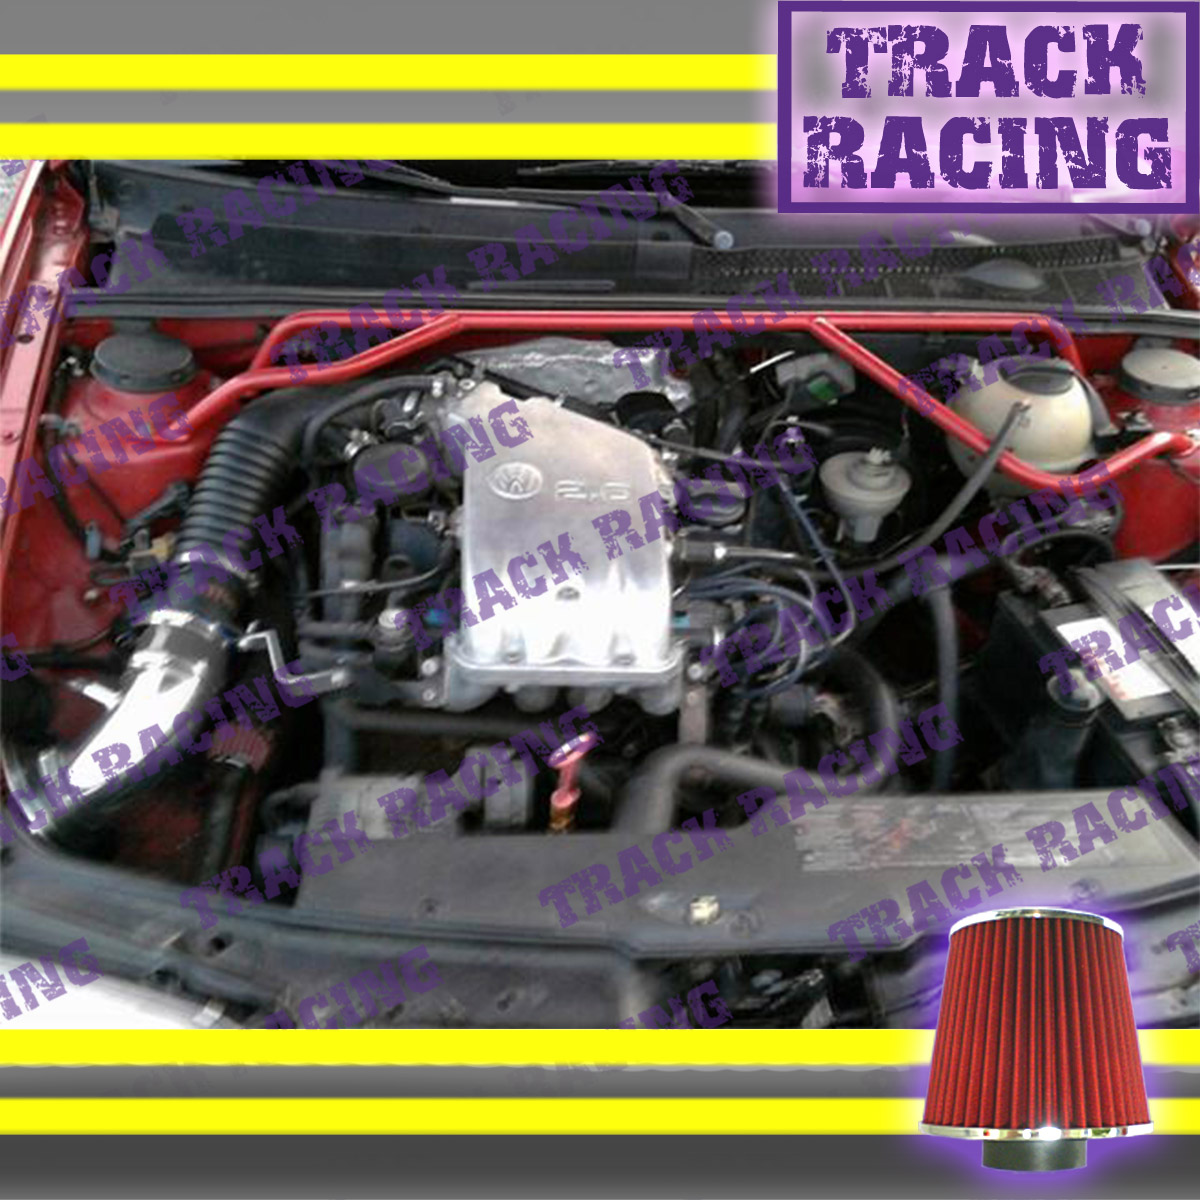 99 Jetta 2 0 Engine Intake Real Wiring Diagram 2000 Volkswagen Cabrio 93 94 95 98 Golf 02 0l I4 Air Rh Ebay Com 20 Vw Cold Valve 2002